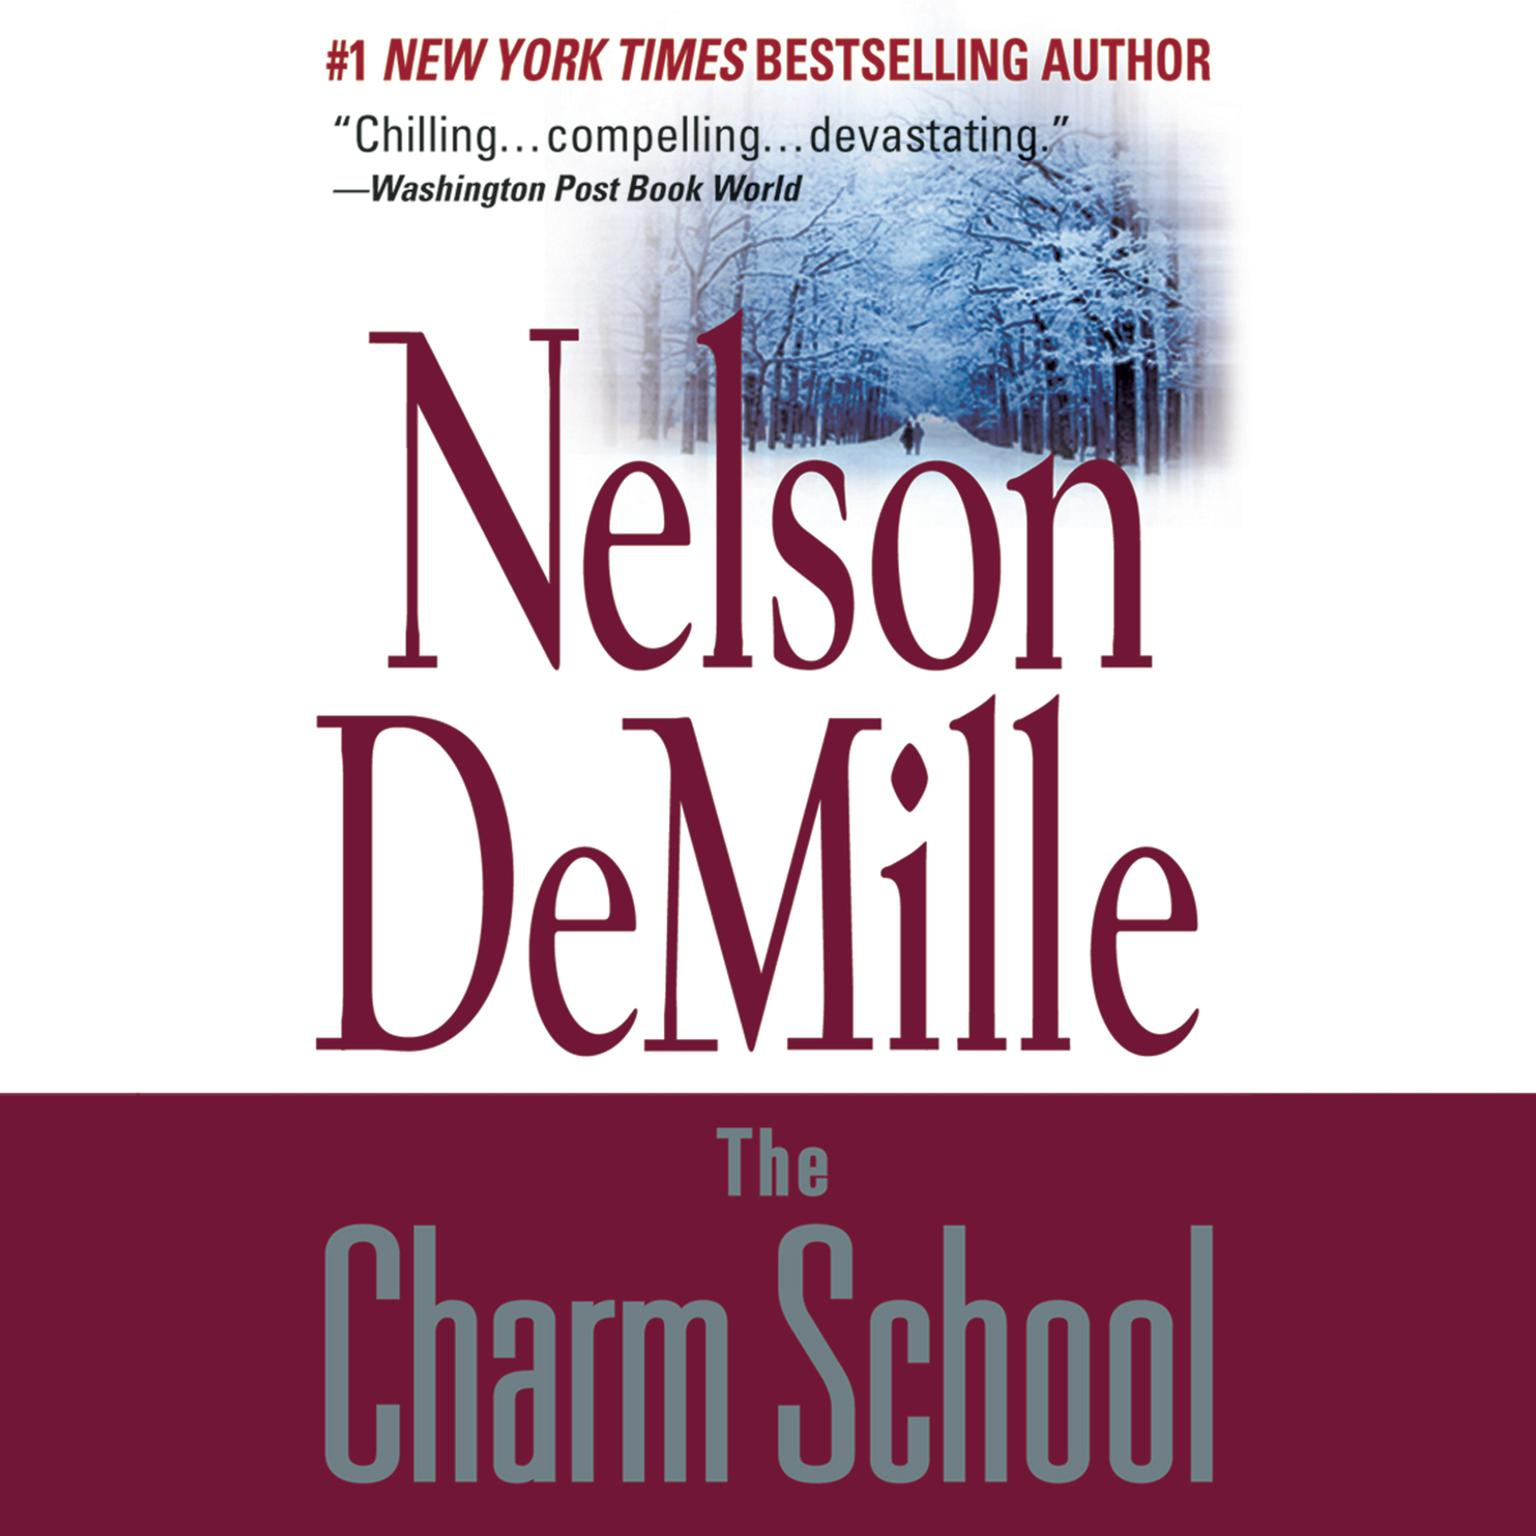 Printable The Charm School Audiobook Cover Art